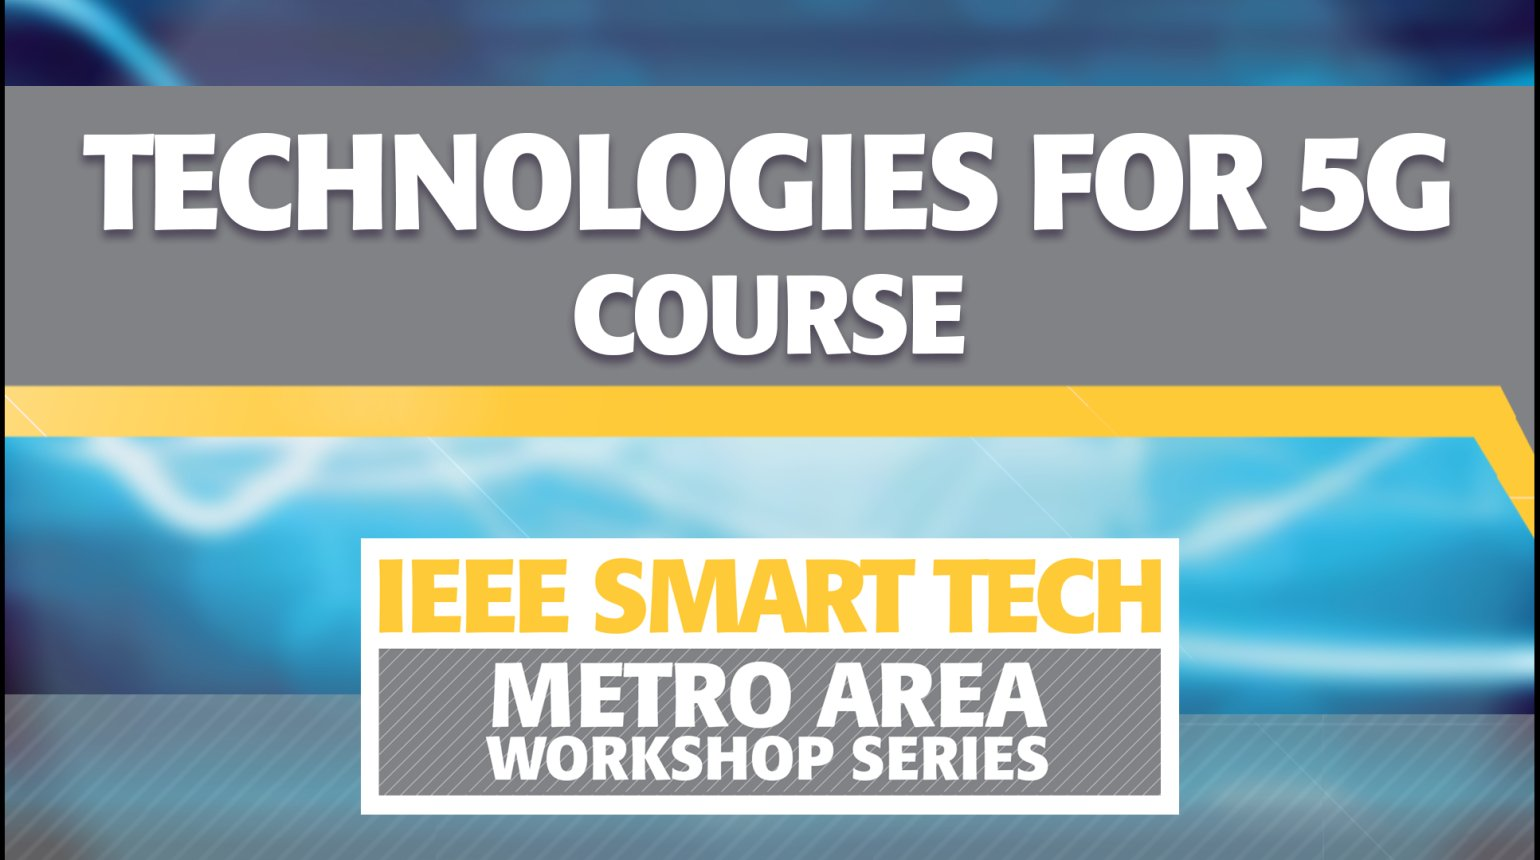 Technologies for 5G Course - IEEE Smart Tech